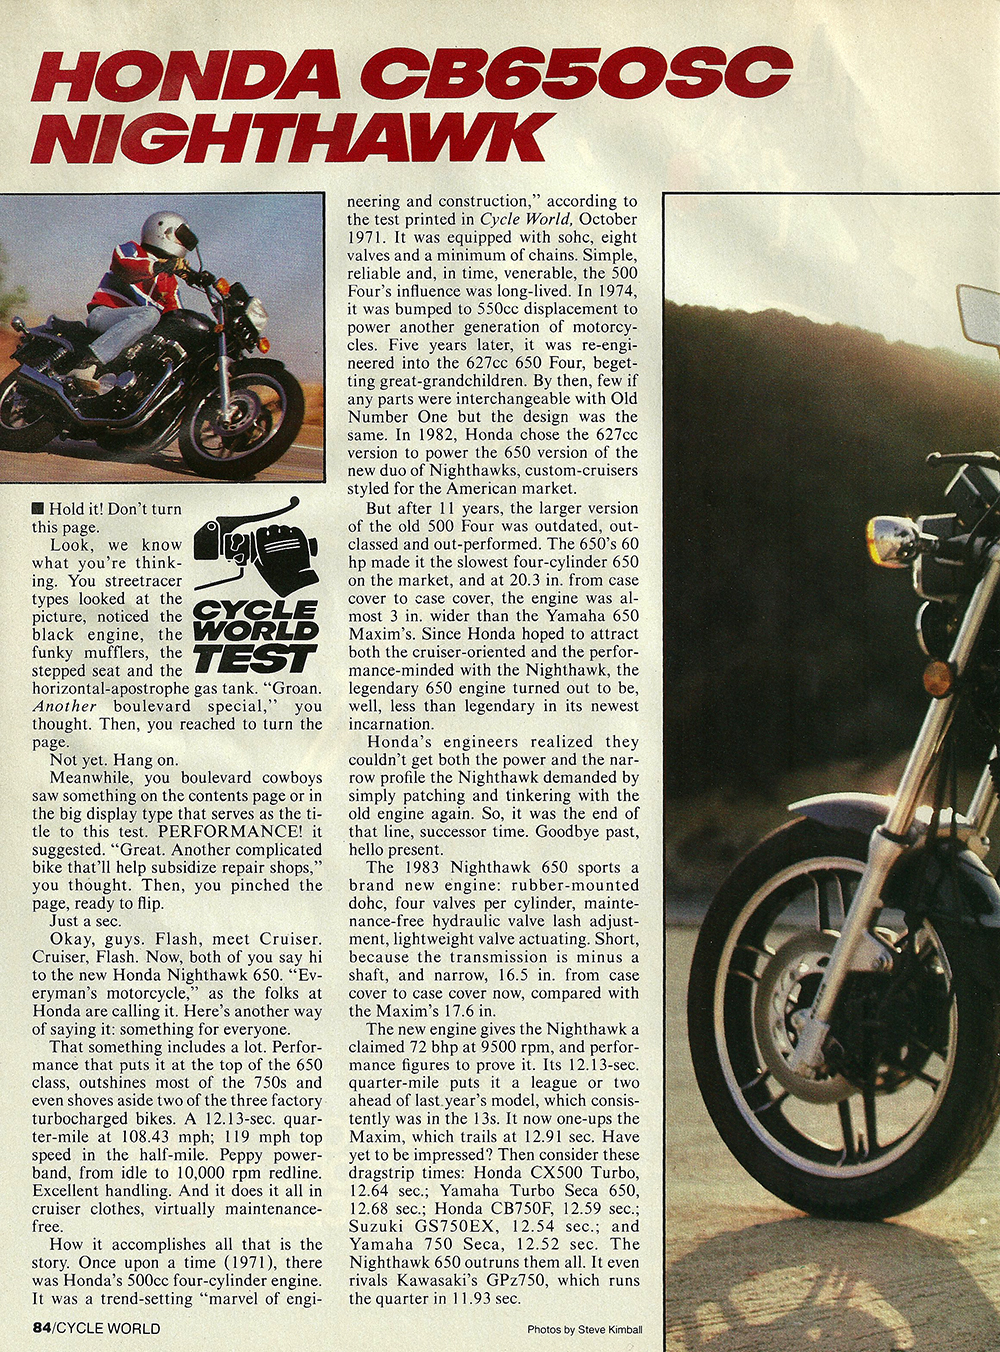 1983 Honda CB650SC Nighthawk road test 01.jpg